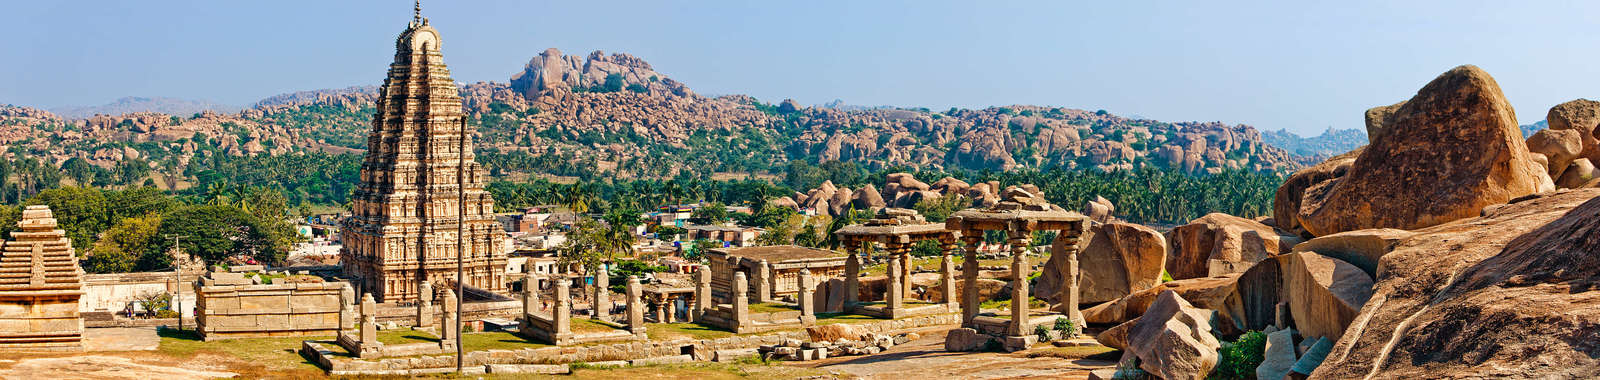 Discover Hampi on a luxury tailor made holiday to South India